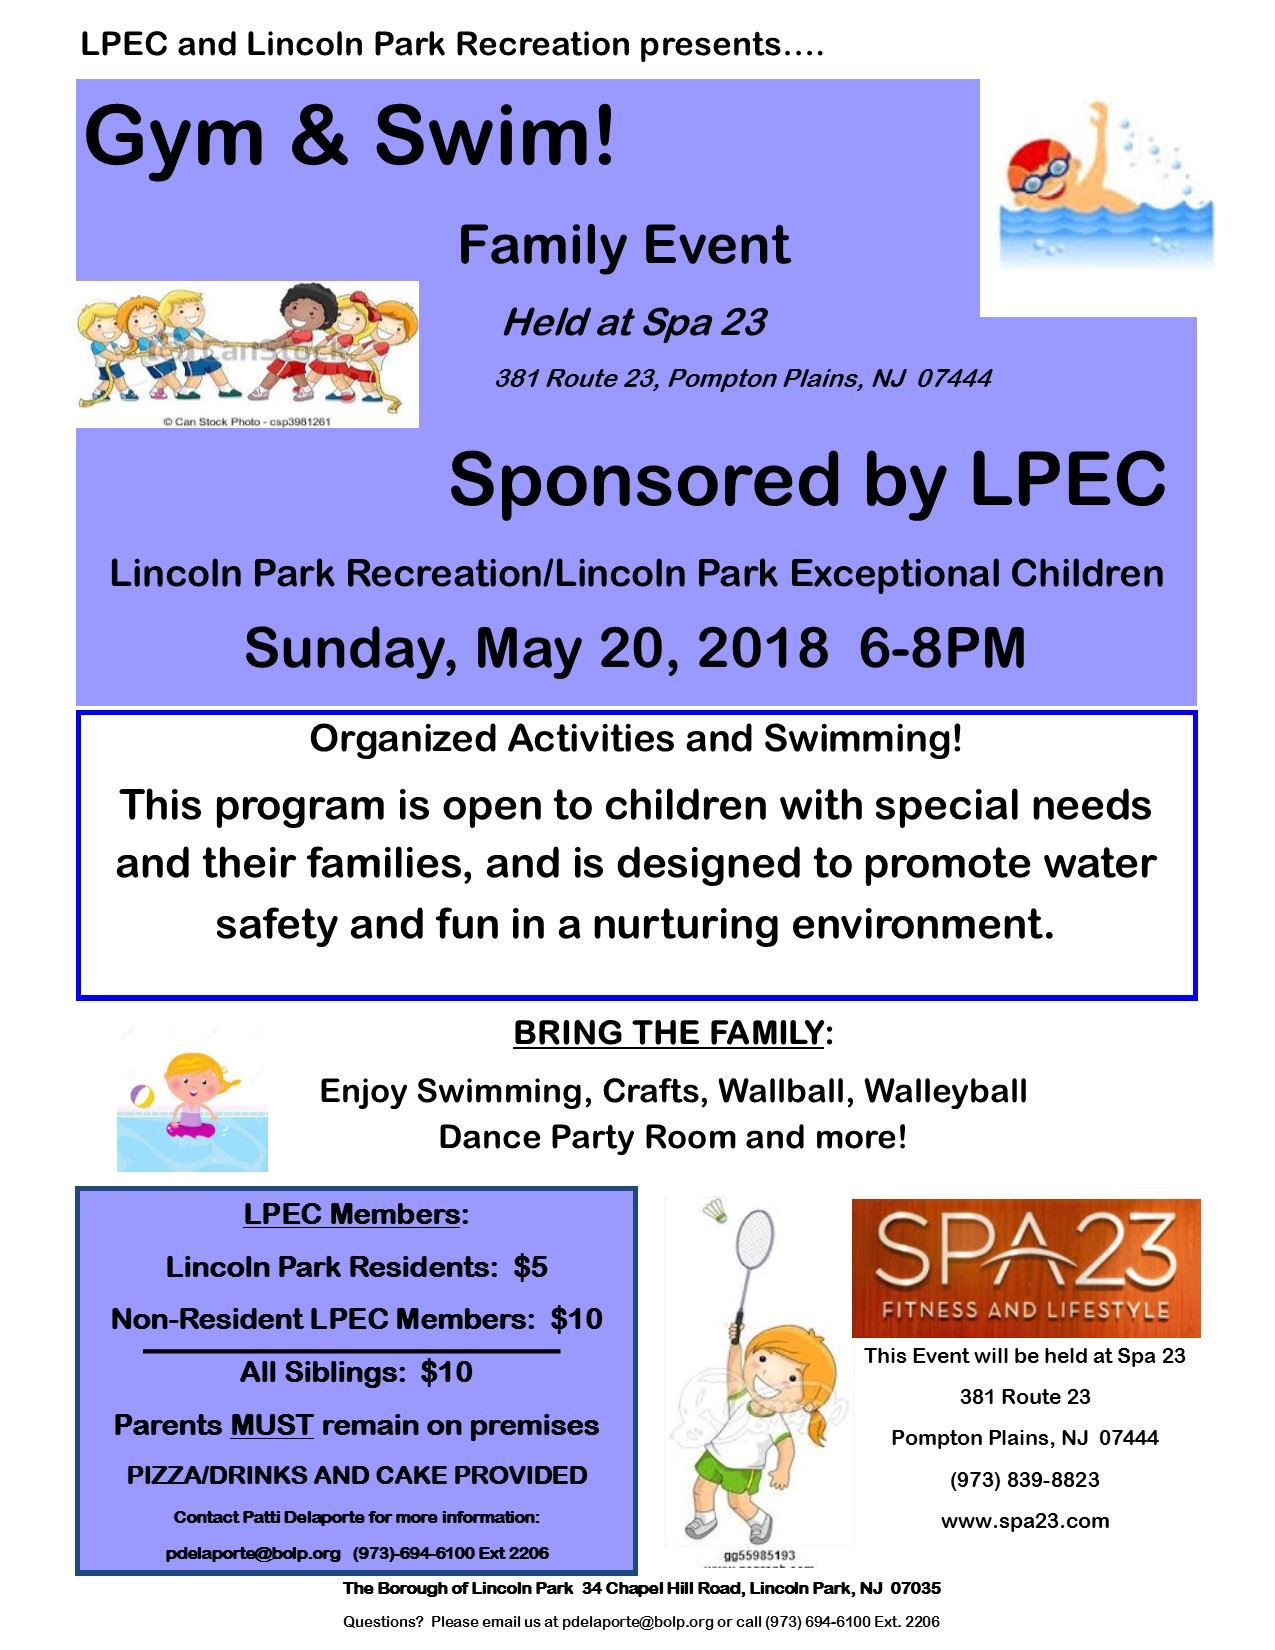 LPEC Gym and Swim May 20 2018